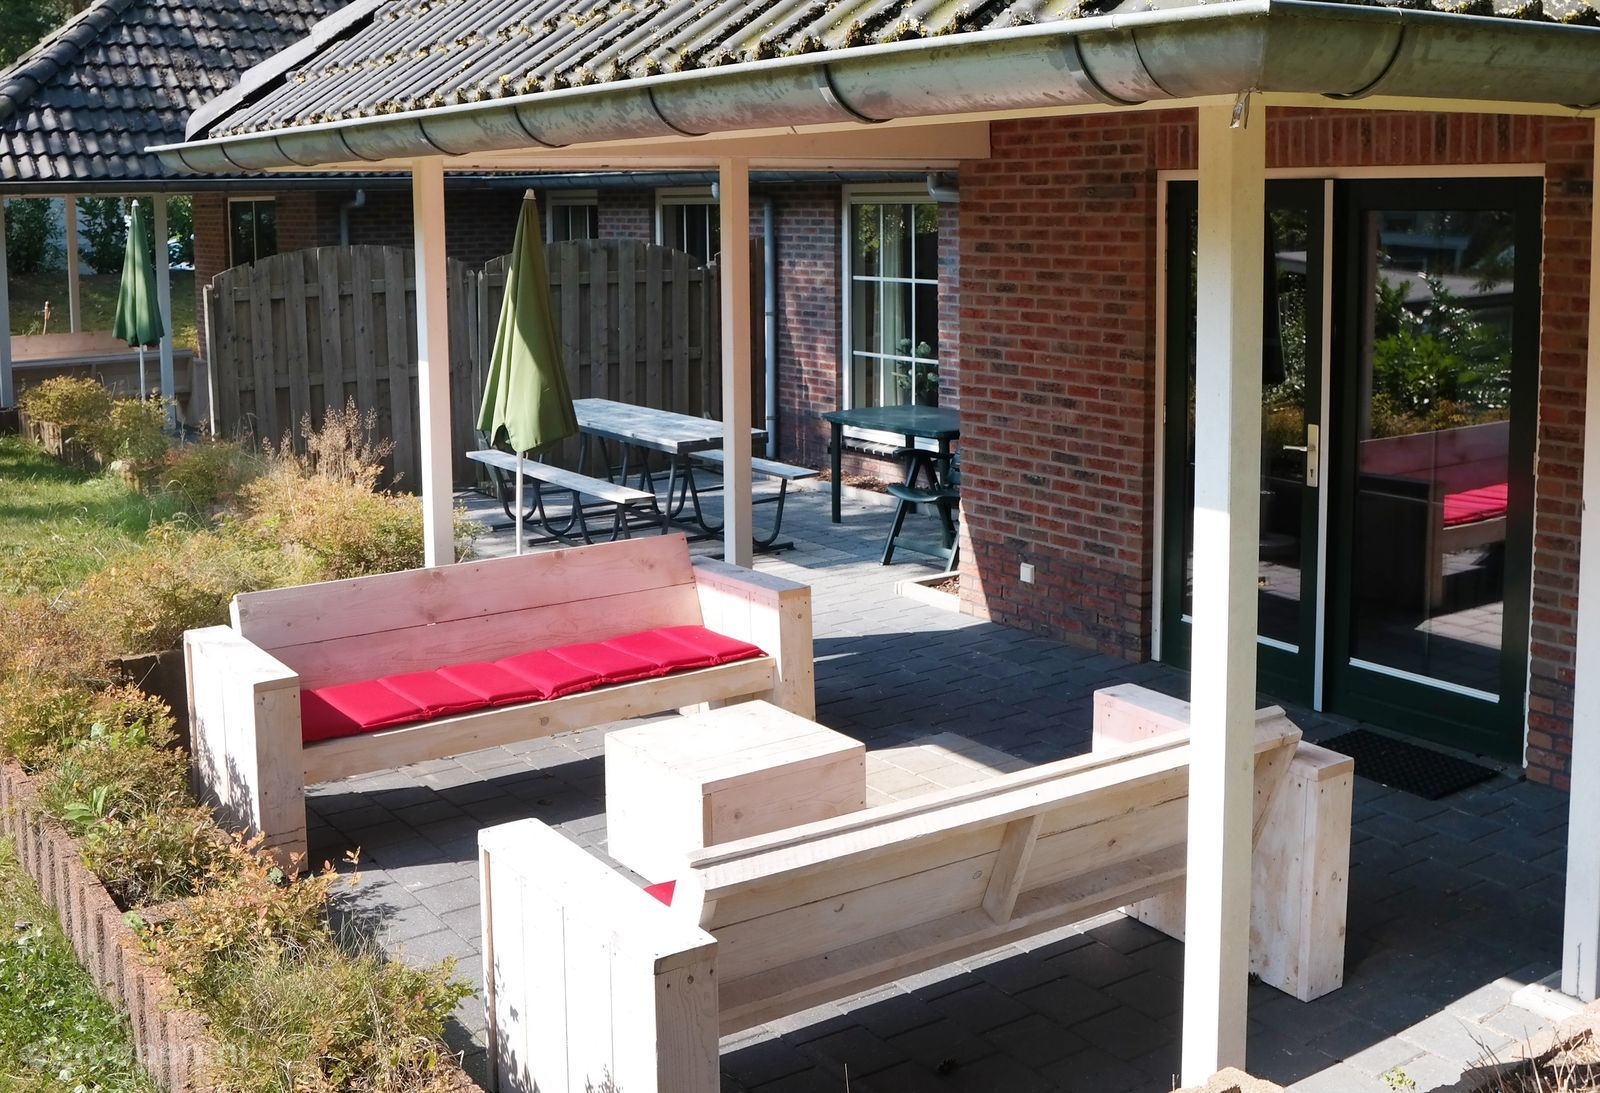 Whirlpool Outdoor Otto Group Accommodation In Hardenberg Province Of Overijssel